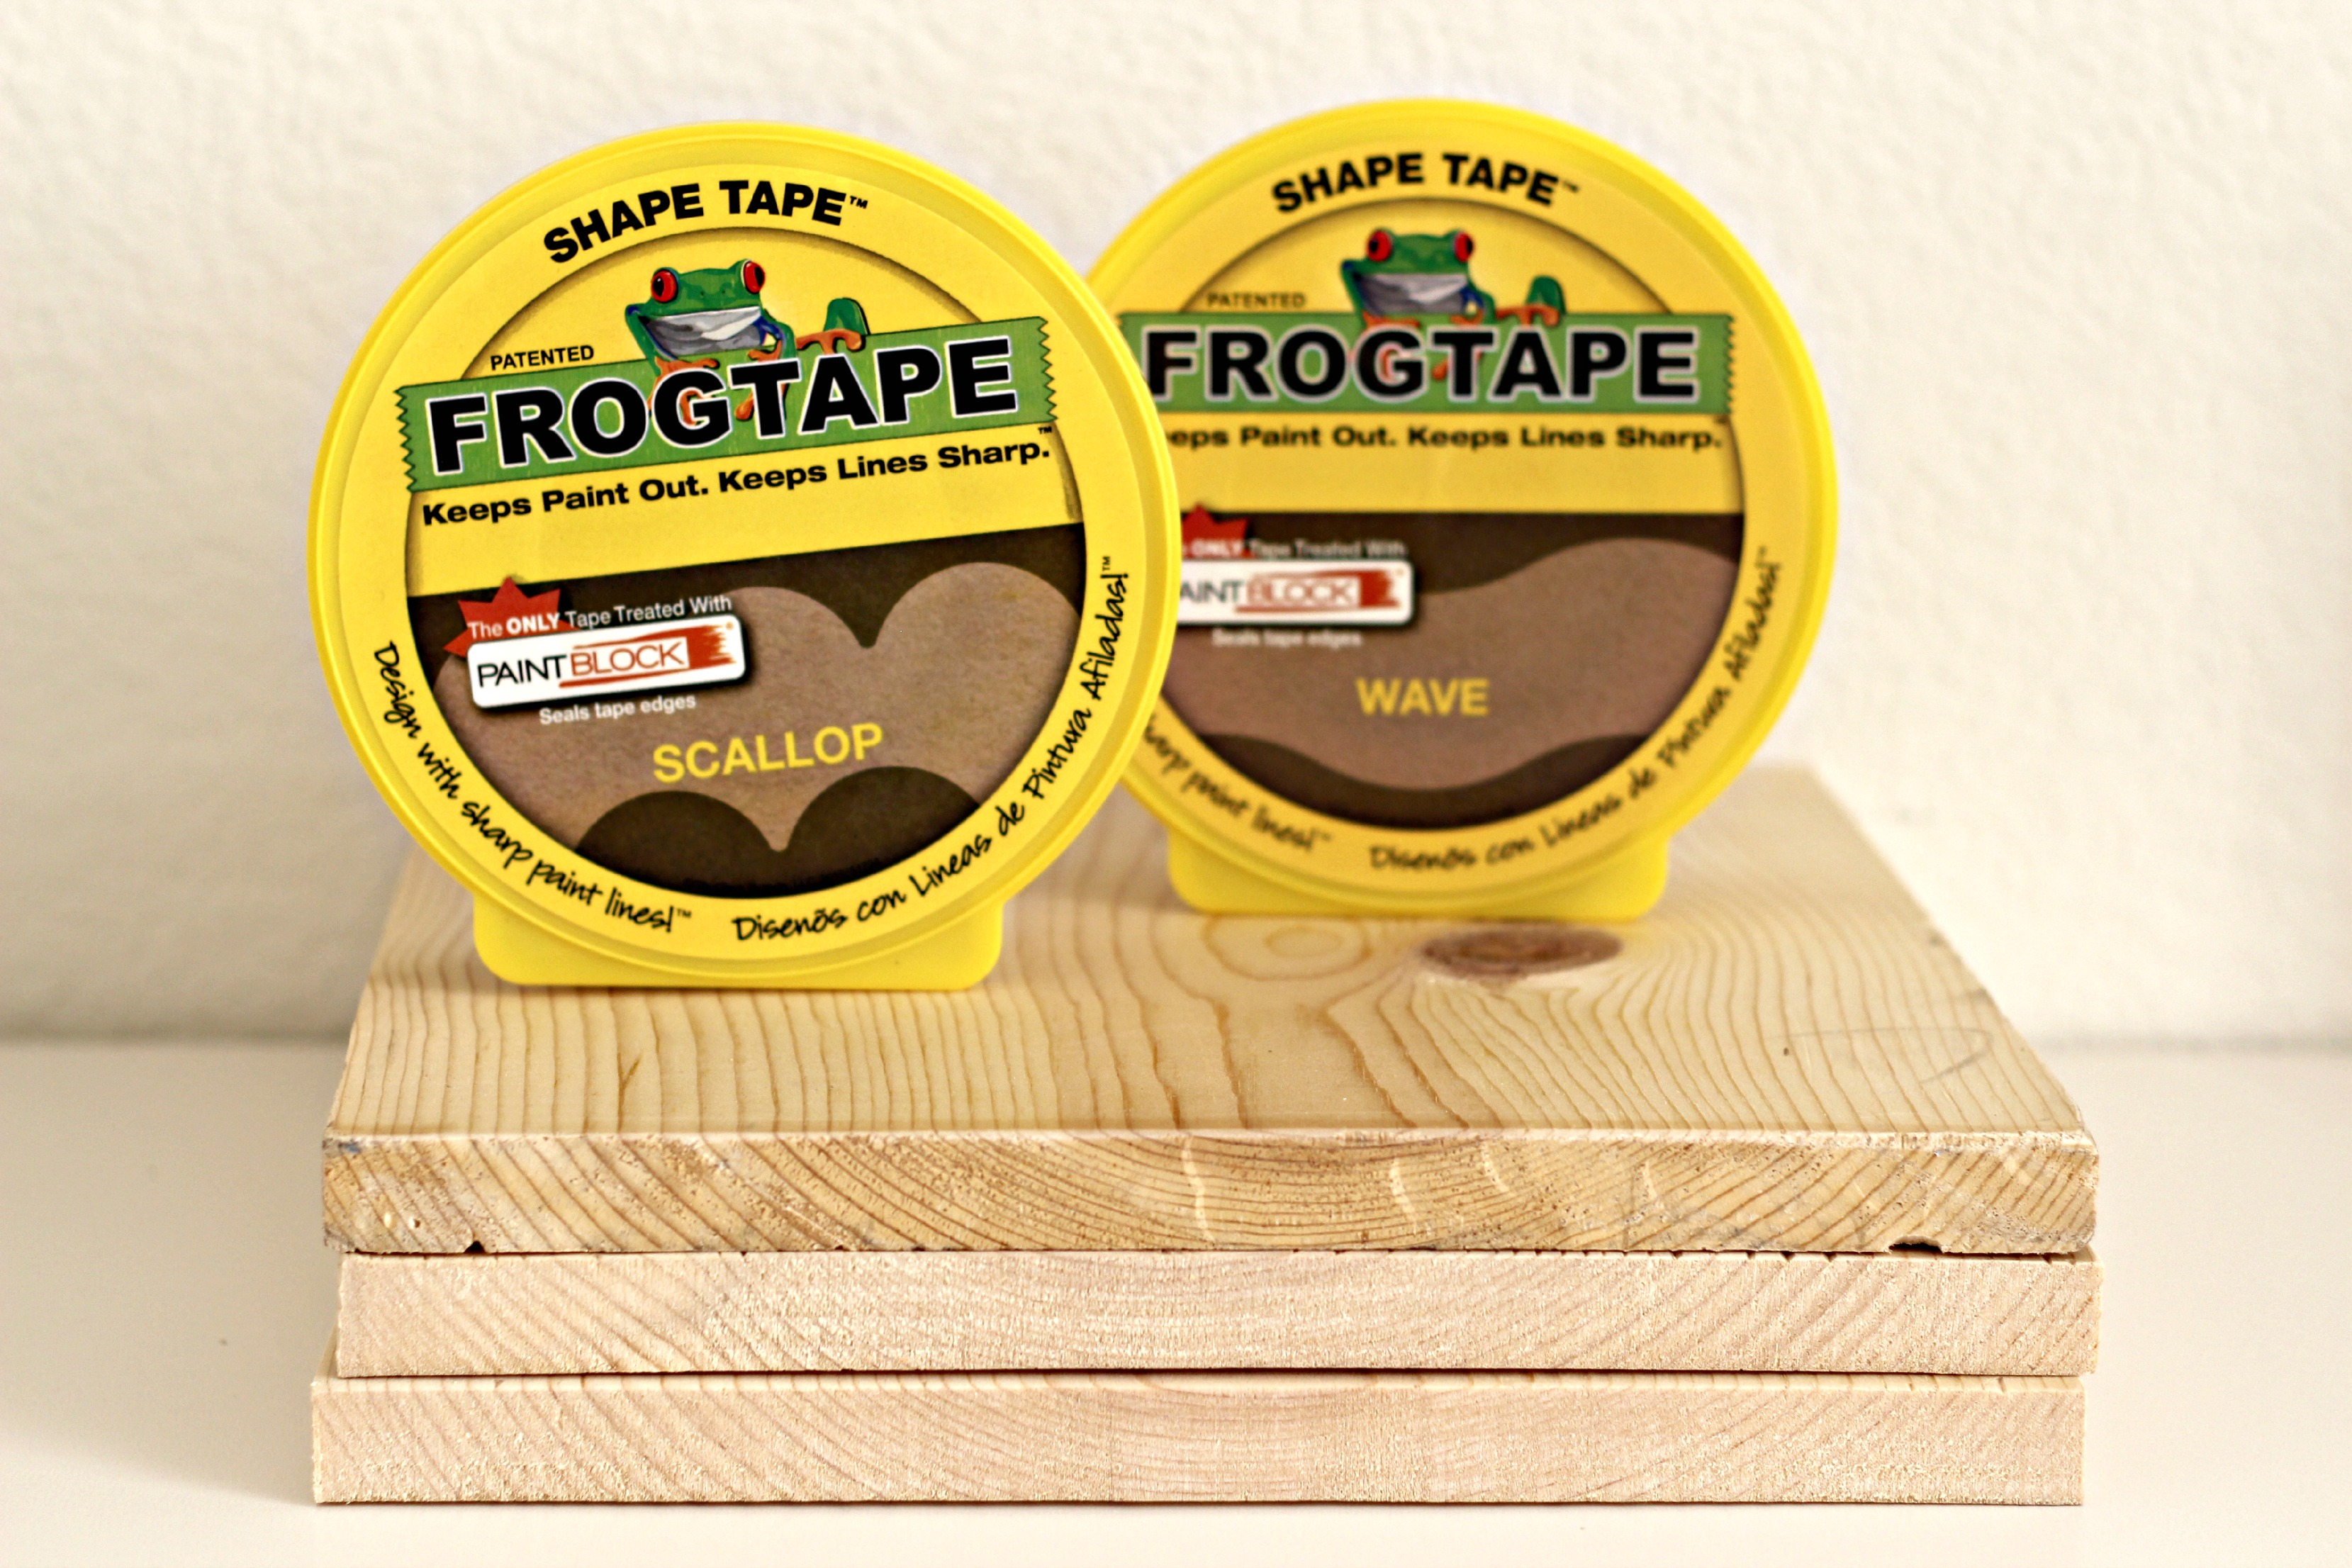 Bathroom Wall Art and Shape Tape™ Giveaway - Organize and Decorate ...